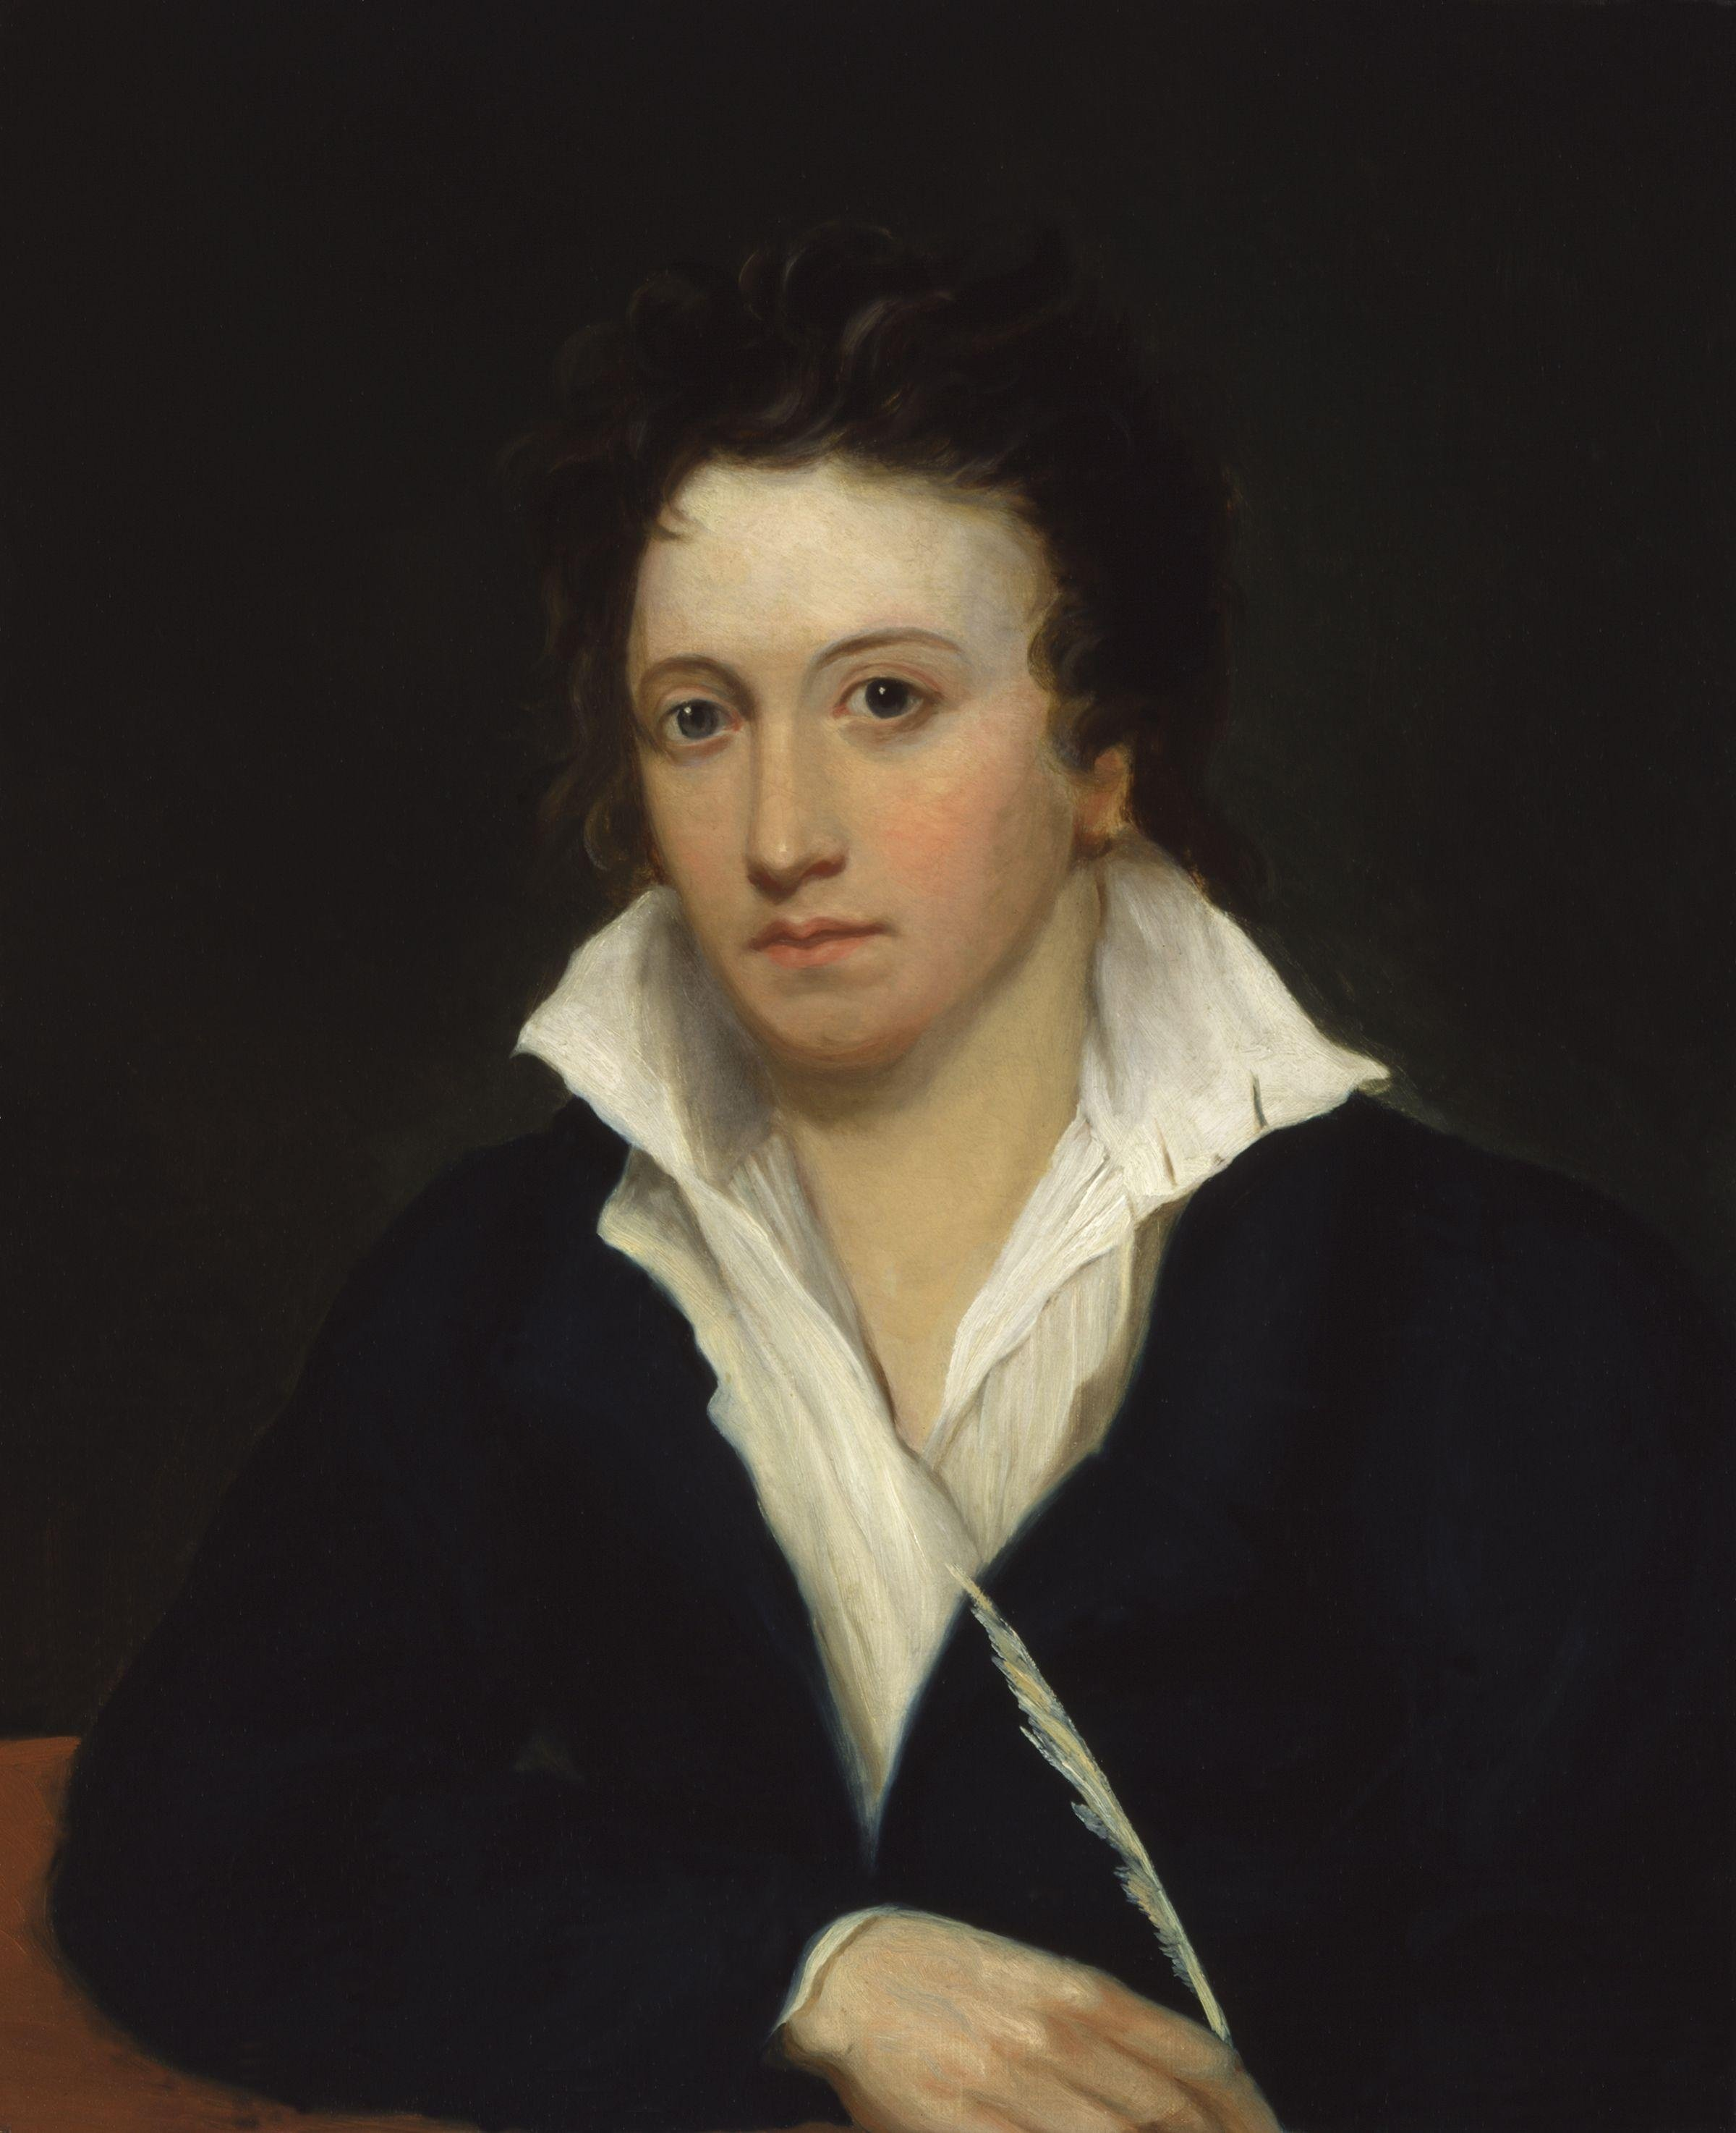 Percy_Bysshe_Shelley_by_Alfred_Clint.jpg